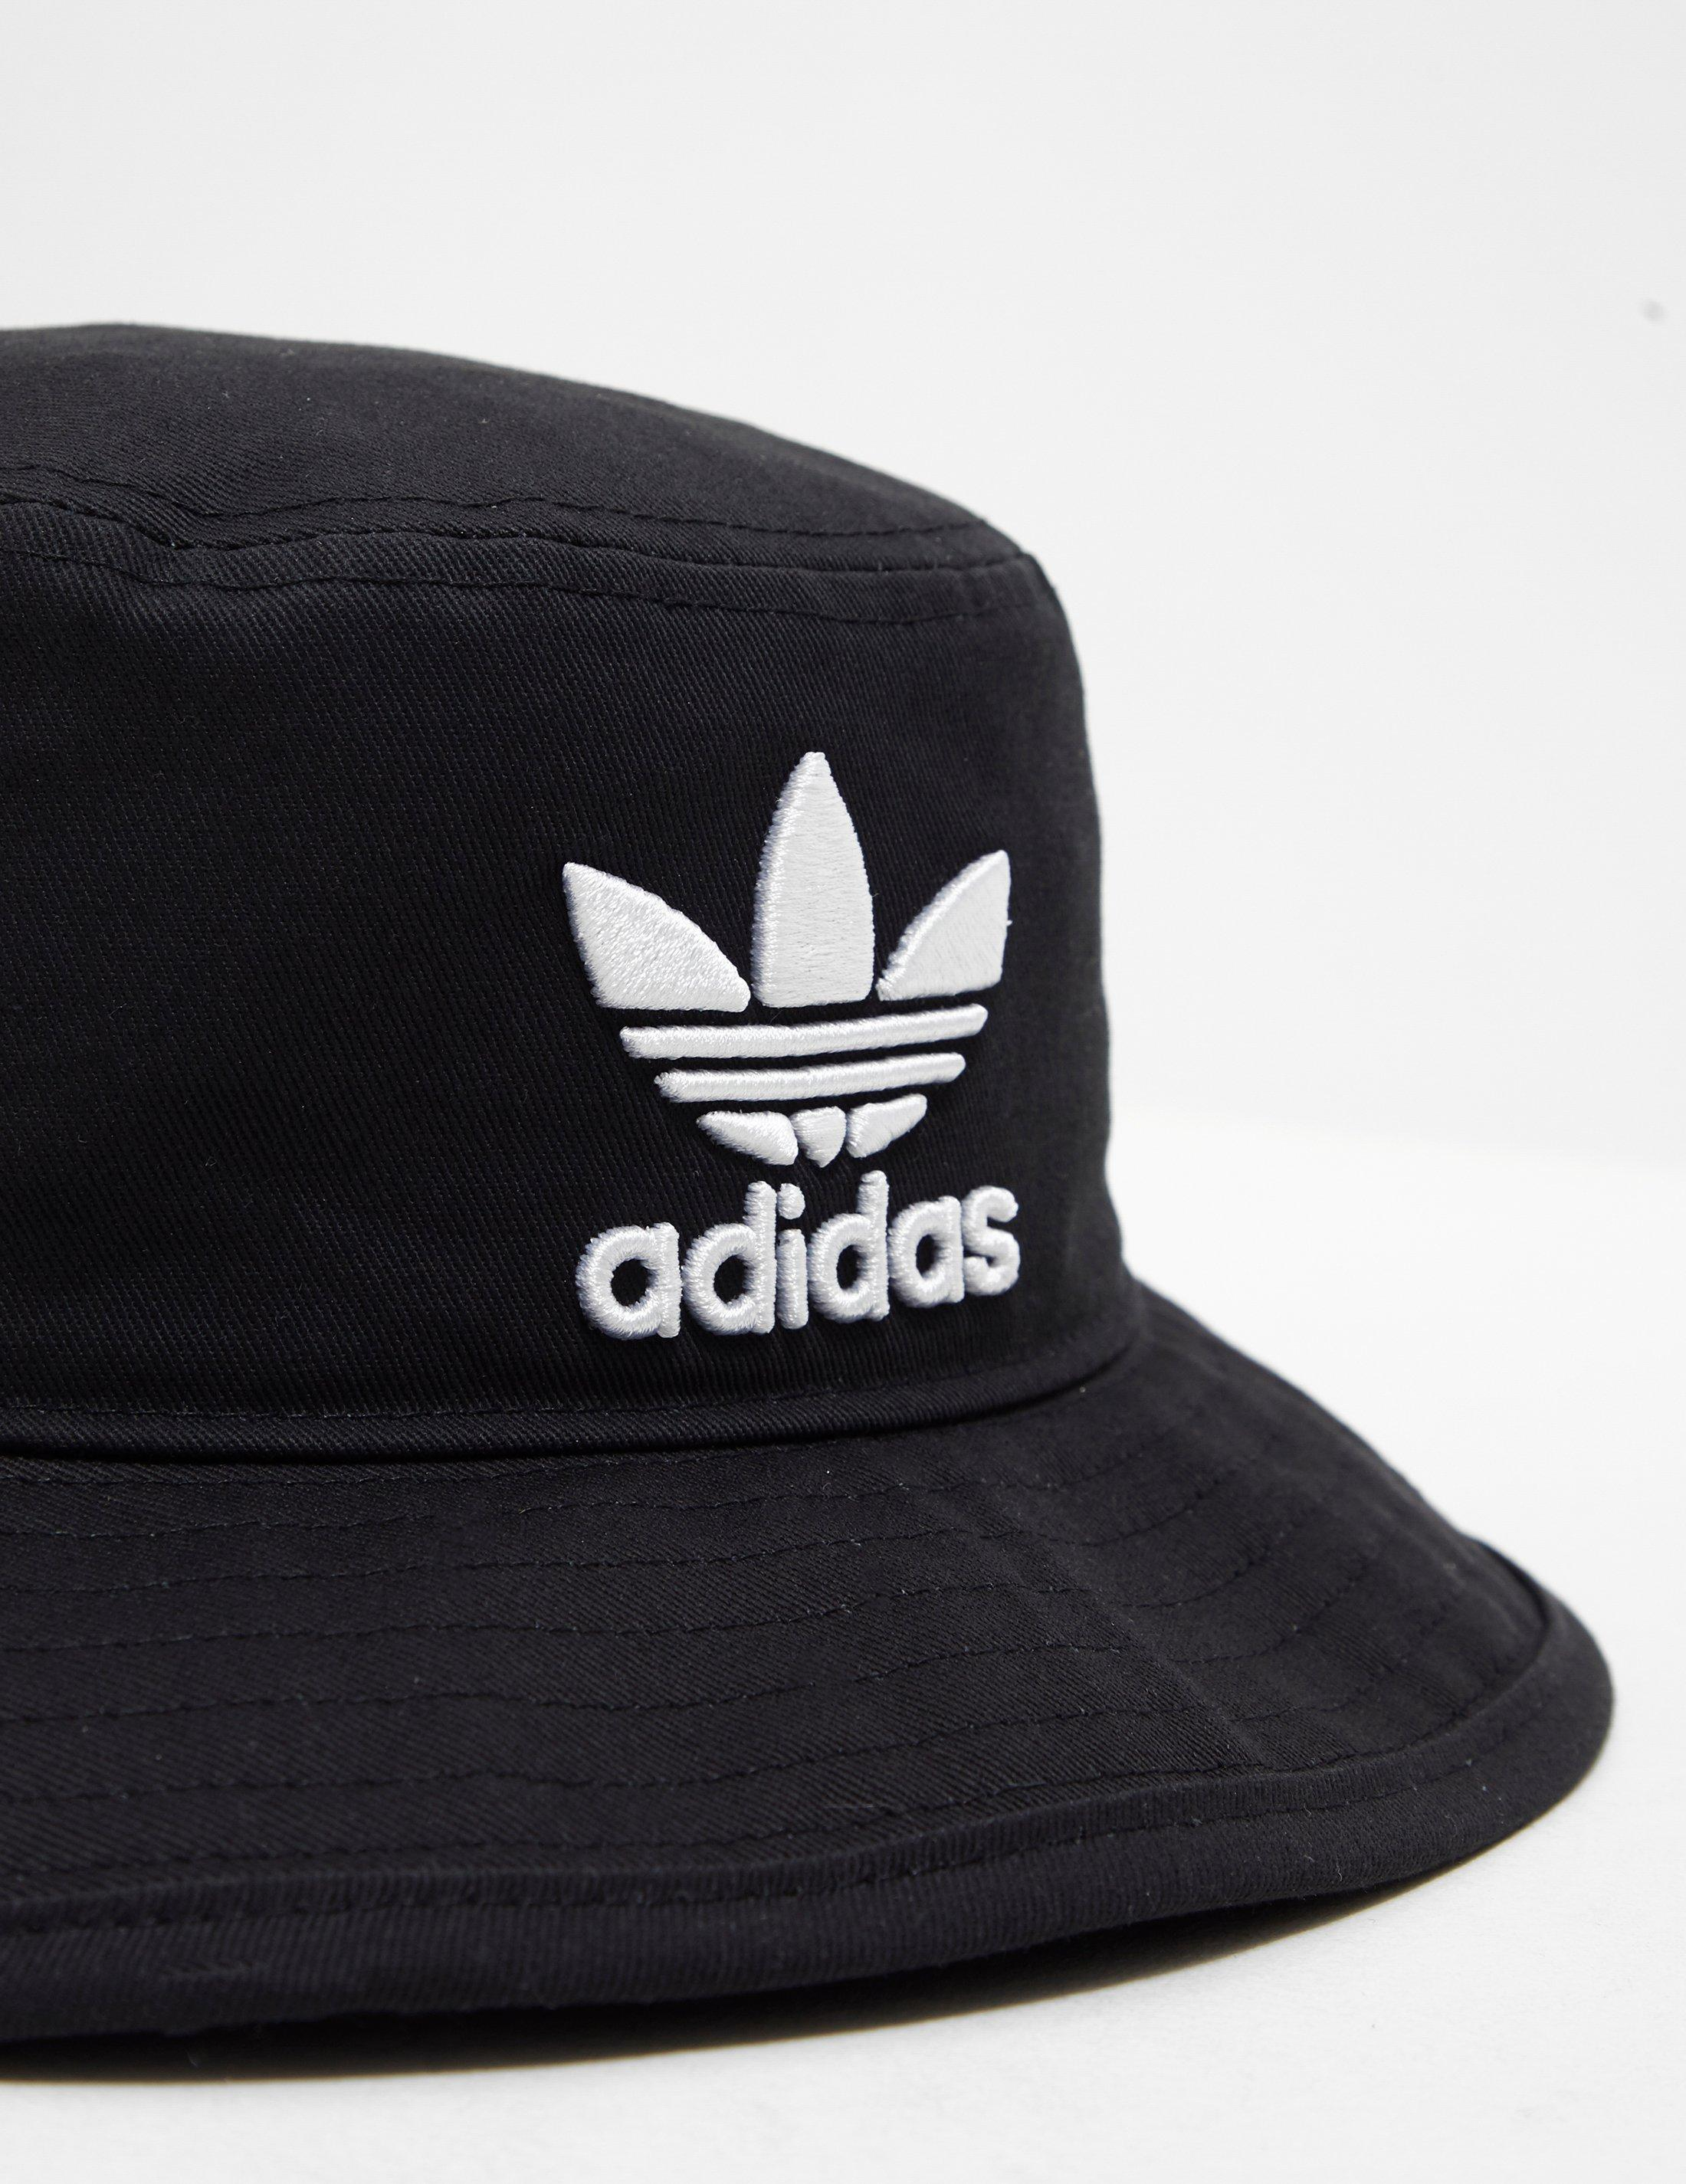 267ed9d16da Lyst - adidas Originals Mens Trefoil Bucket Hat Black black in Black ...